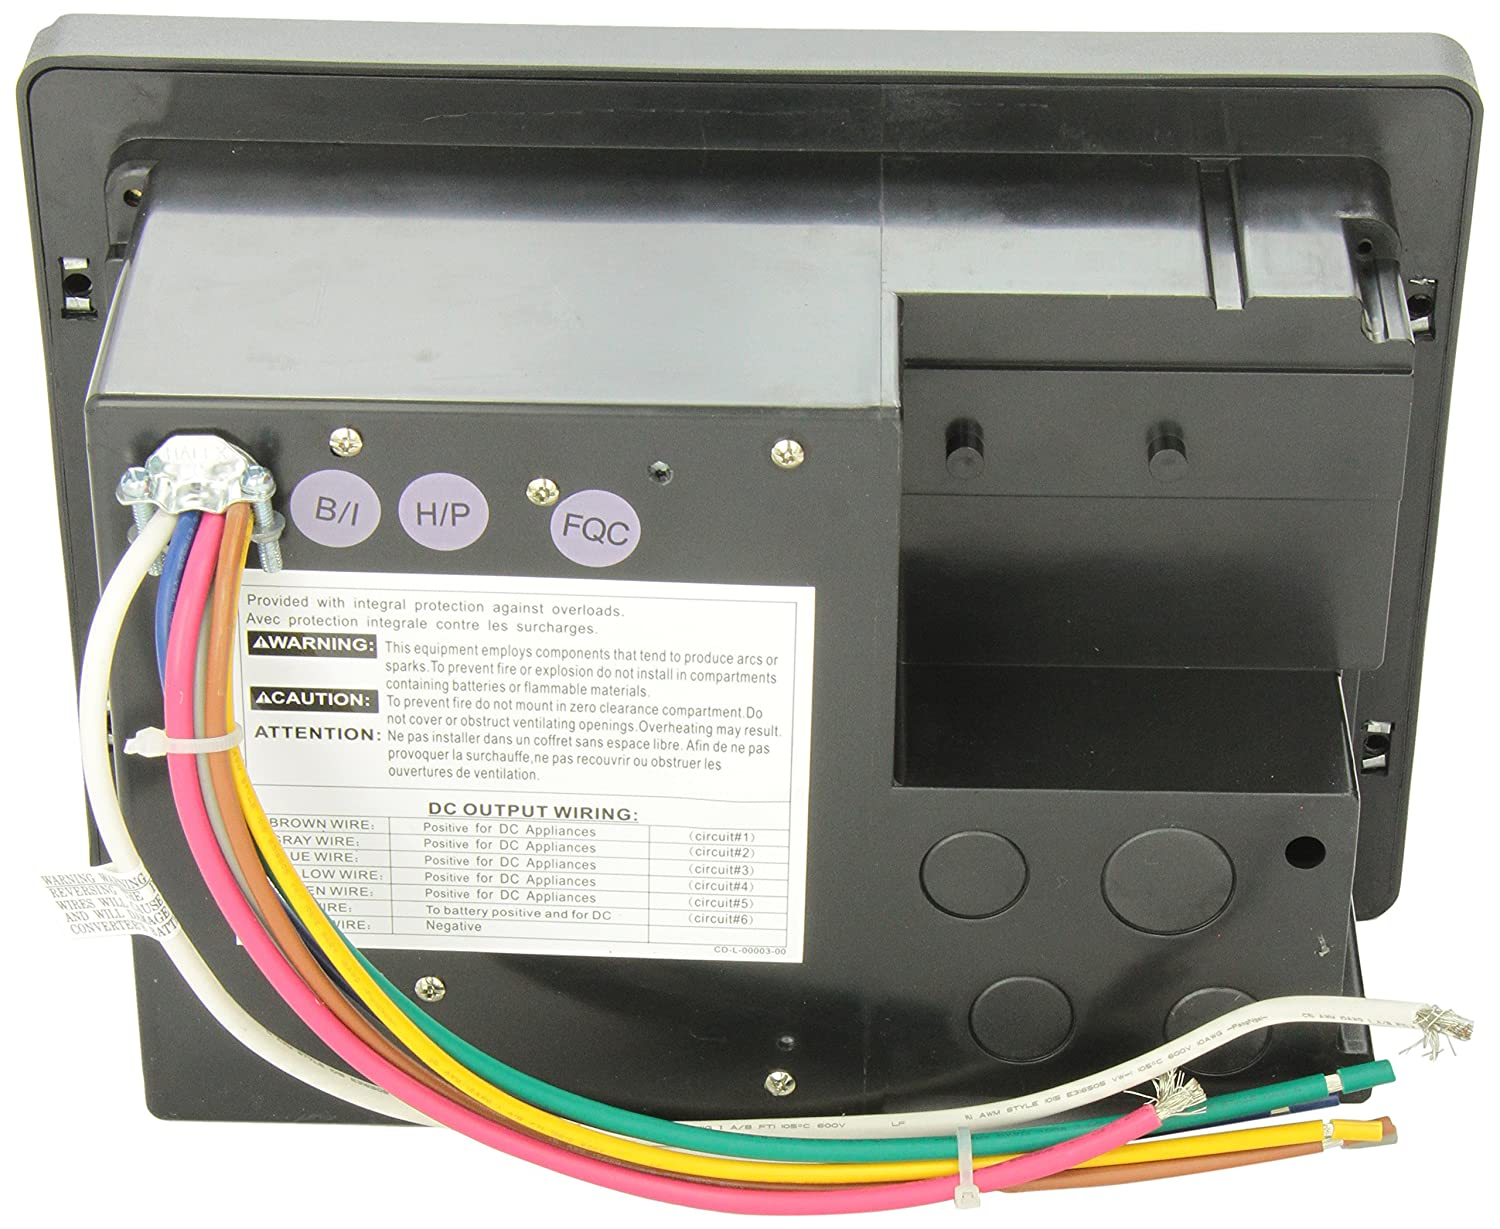 91h5ukcMsUL._SL1500_ amazon com wfco wf 8735 p black 30 amp power center automotive wf 8725 p wiring diagram at nearapp.co